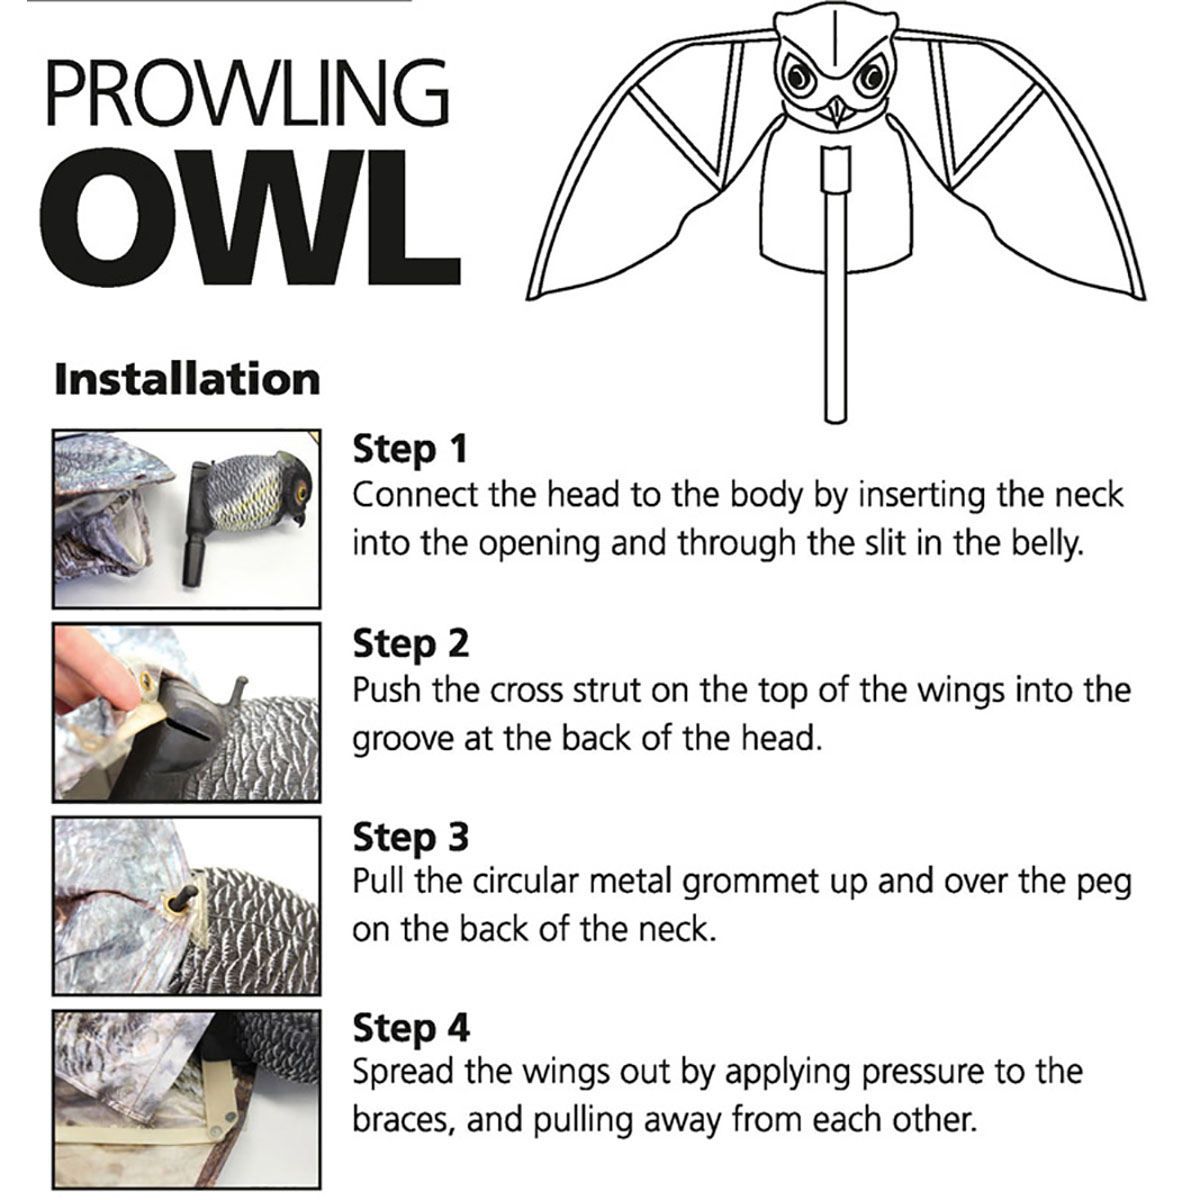 18409 prowling owl